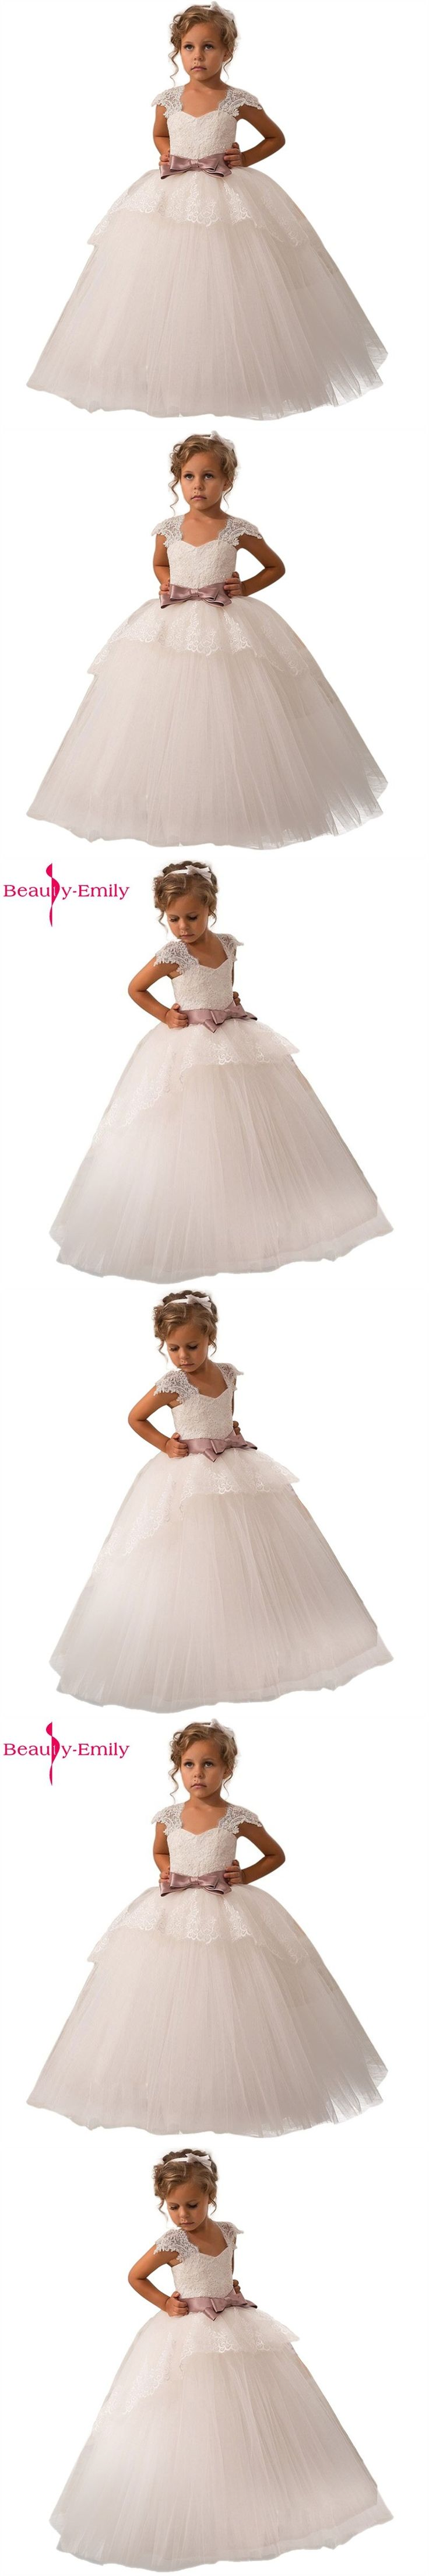 Beauty-Emily flower girls dresses for weddings Baby Party frocks sexy children images Dress kids prom dresses evening gowns 2016